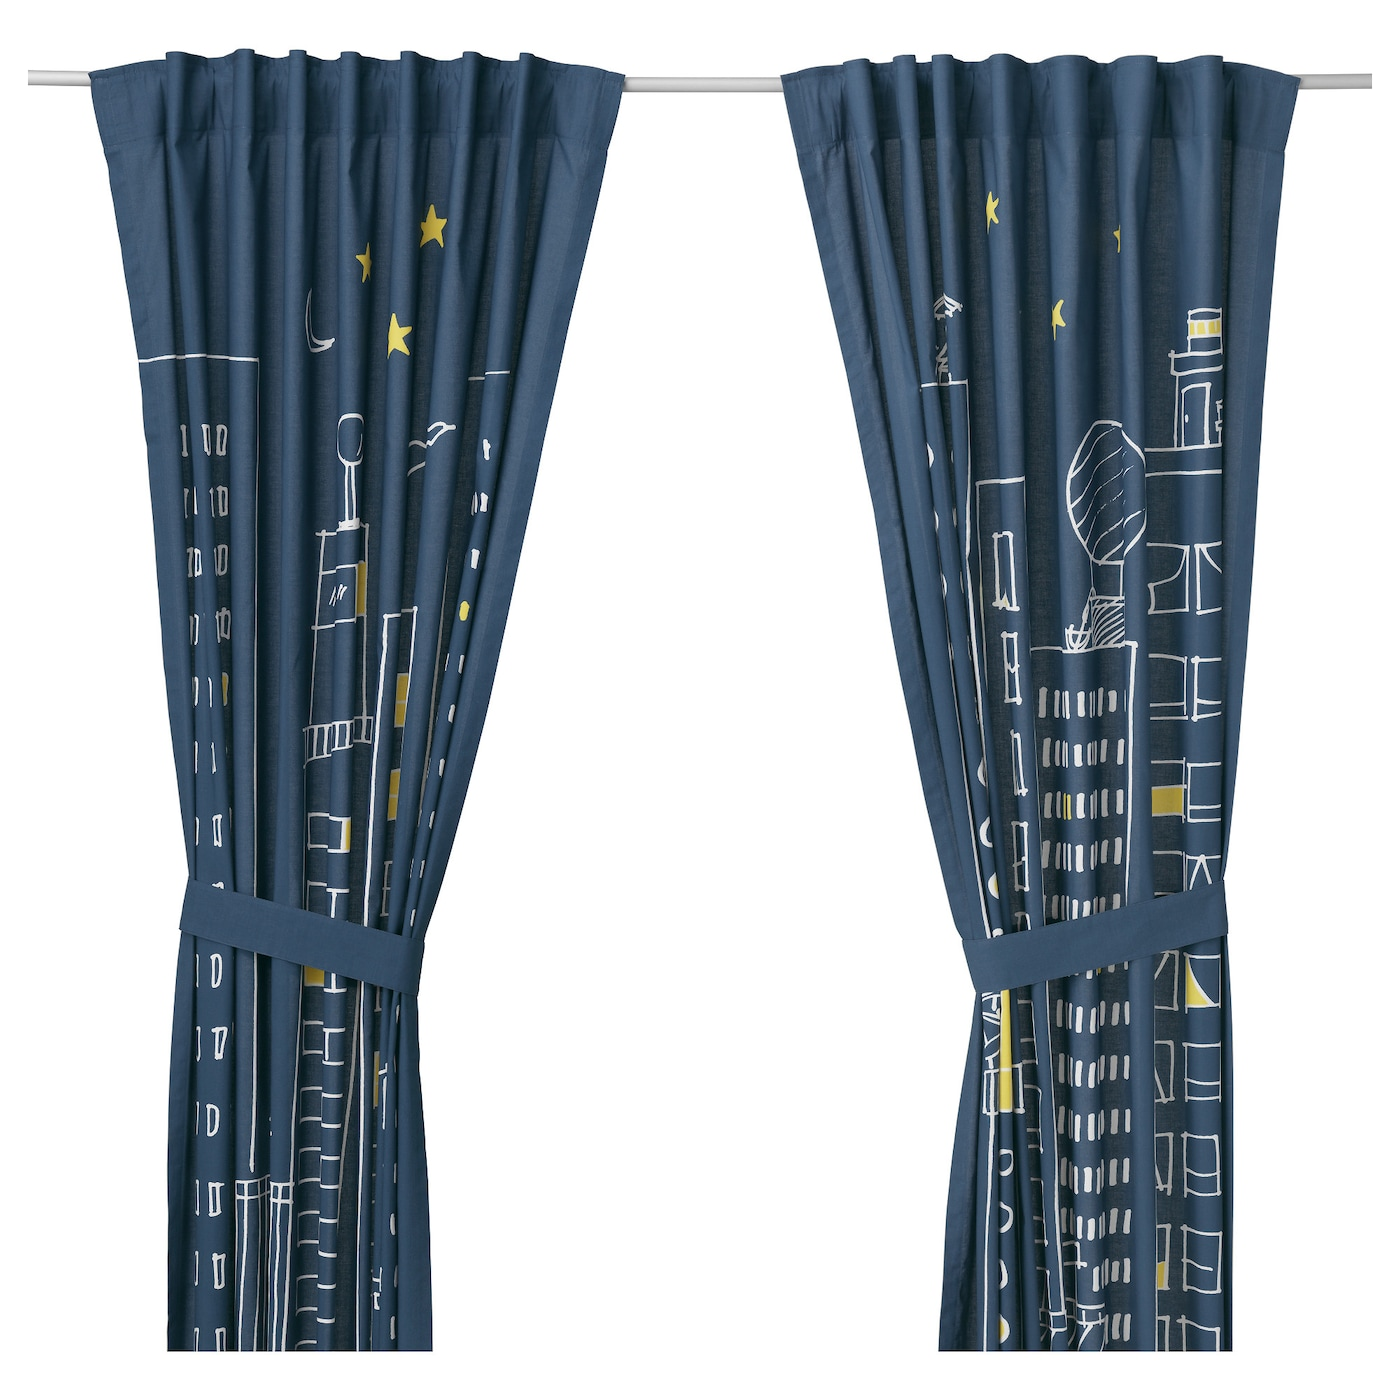 IKEA HEMMAHOS curtains with tie-backs, 1 pair